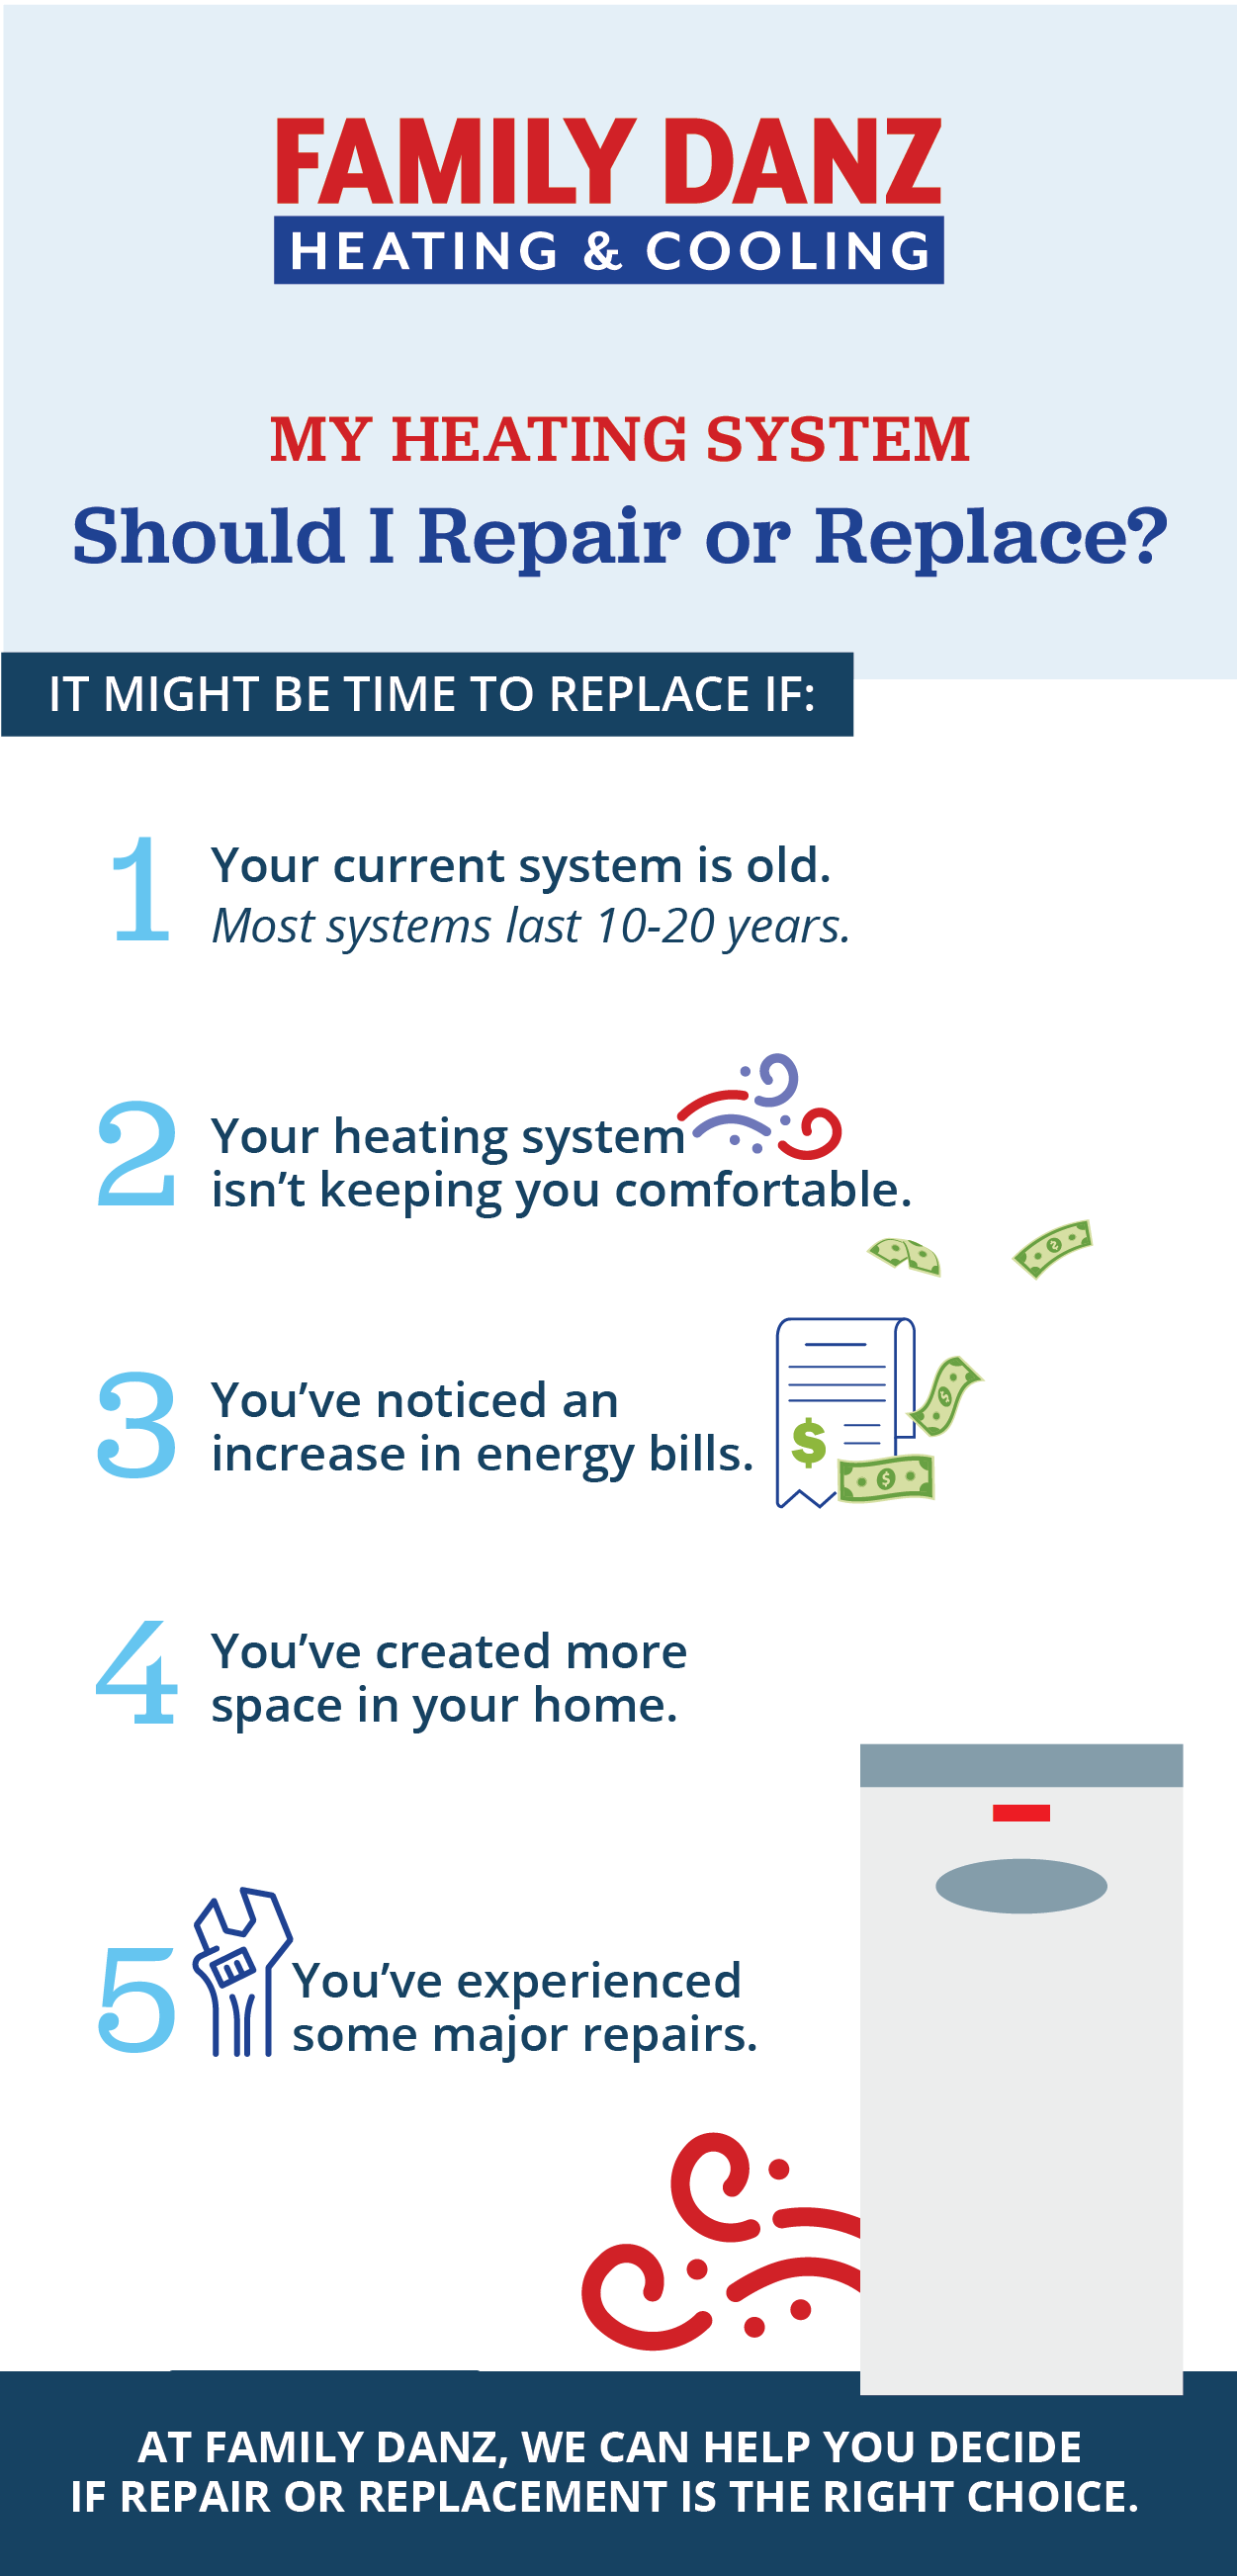 Should I Repair or Replace my Heating System Infographic.